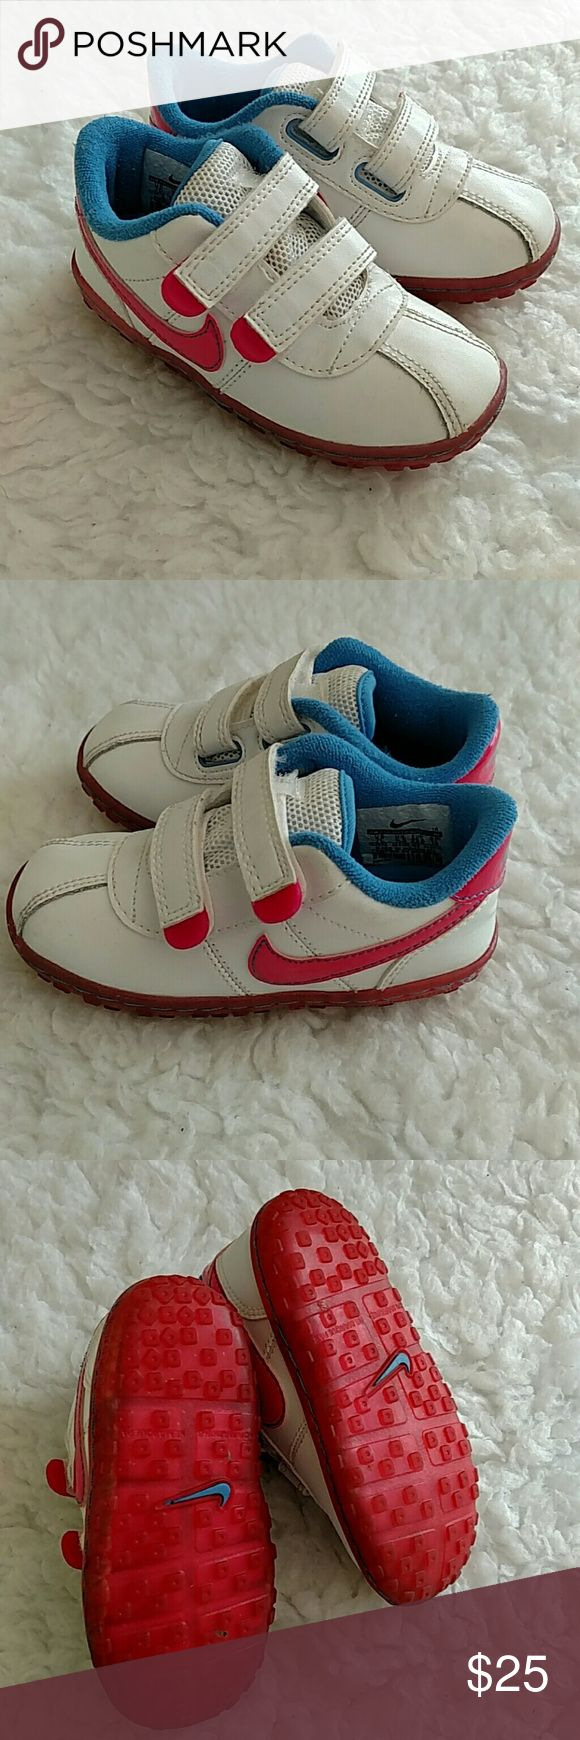 Nike white, pink & blue double Velcro strap shoes Like new. I'm great condition. White with the Pink nike swoosh. Couple Velcro straps for little ones learning to put on shoes!! Nike Shoes Sneakers